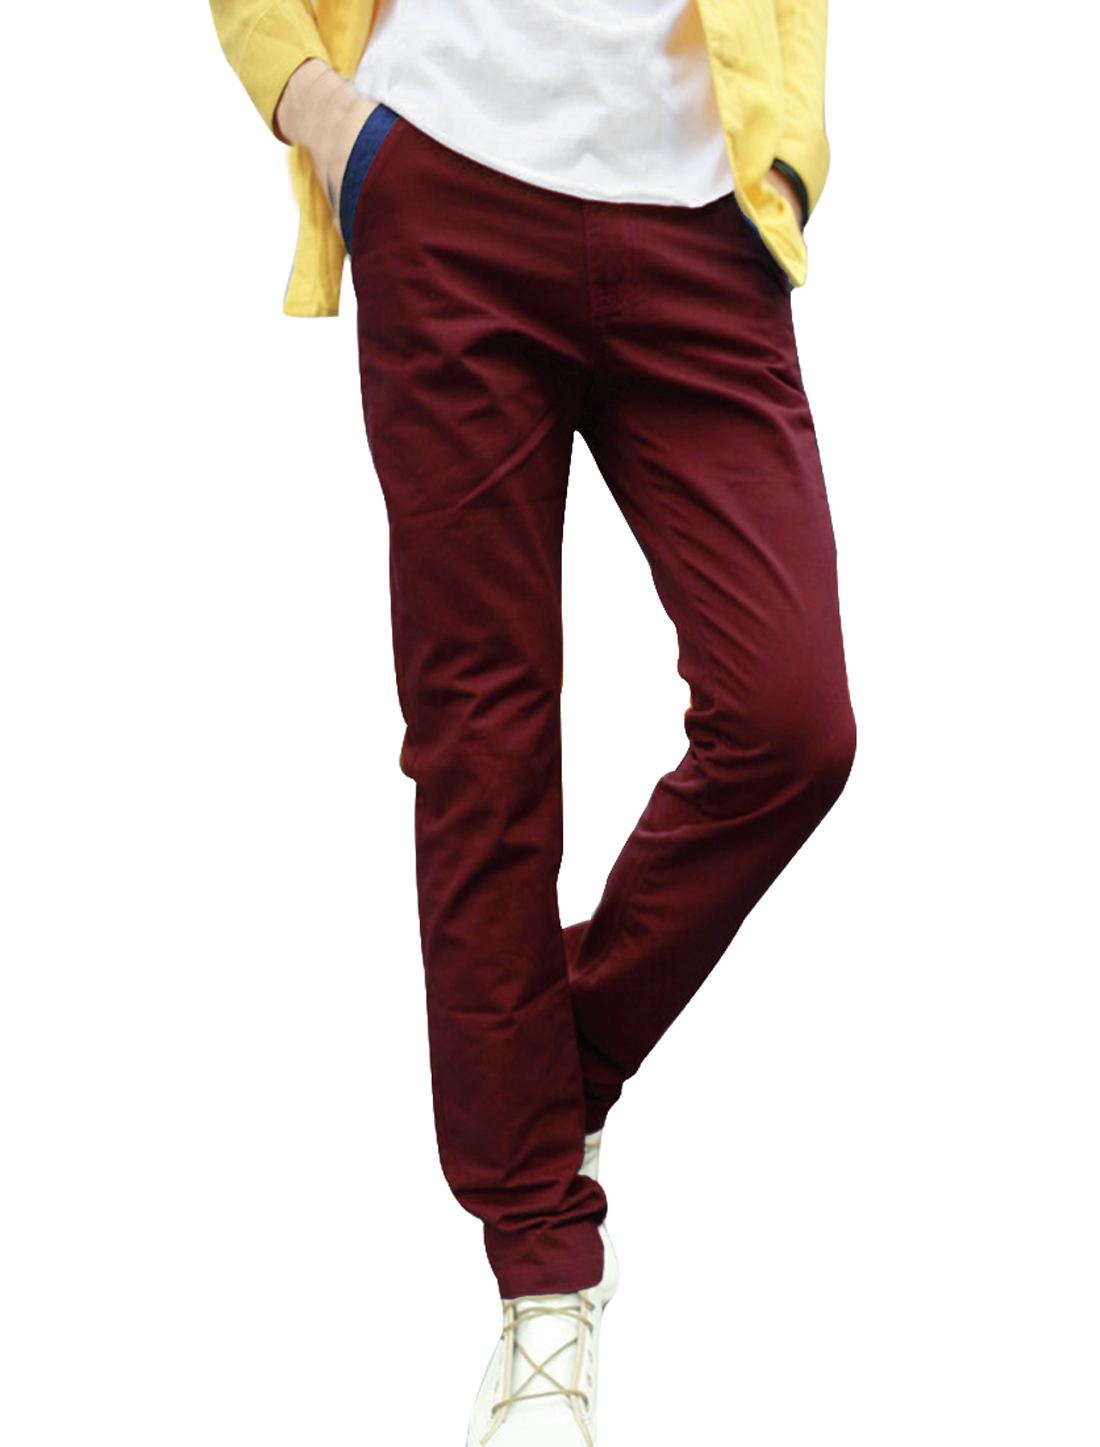 Mens Chic Zipper Fly One-Button Front Demin Splice Detail Burgundy Pants W32